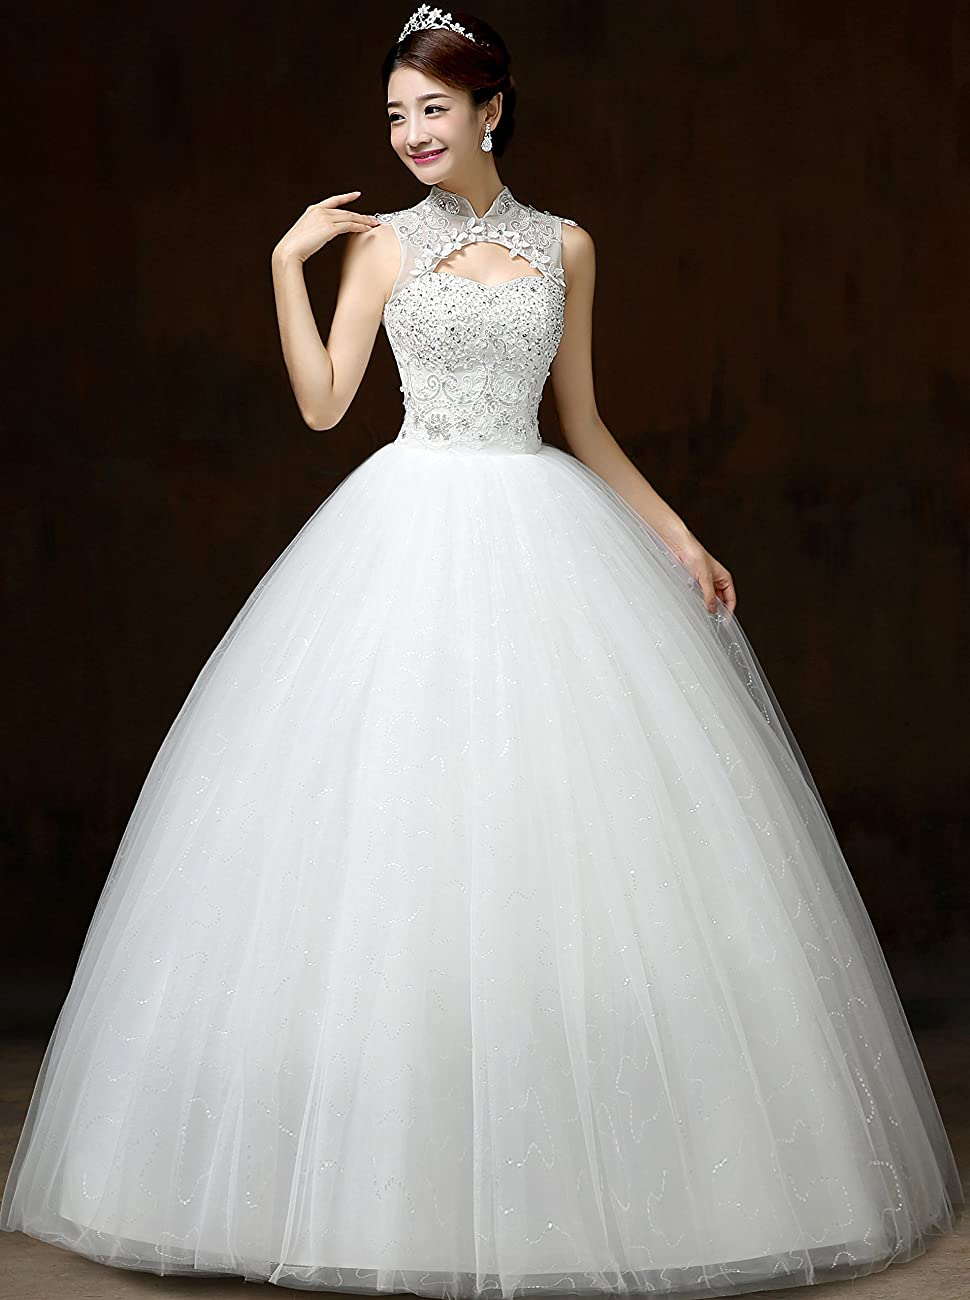 Clover Bridal Vintage High Collar Pearl Wedding Dress for Bride White Under 100 1